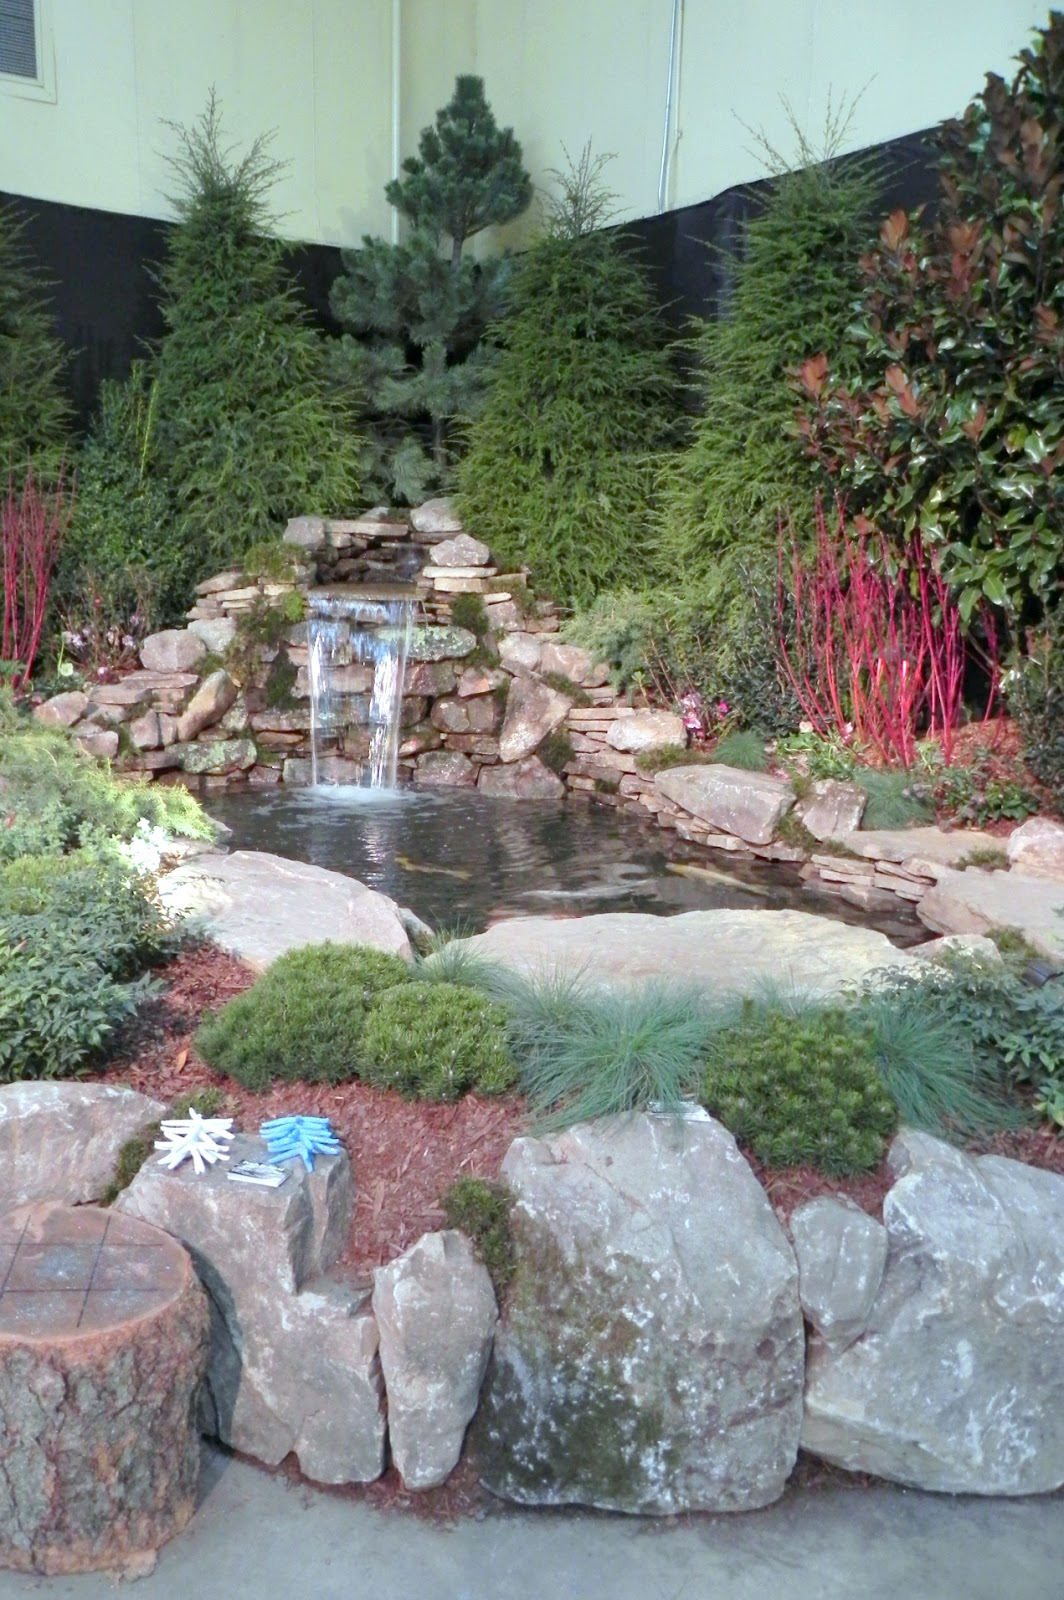 Gone walkabout 2 nashville lawn and garden show 2017 Nashville home and garden show